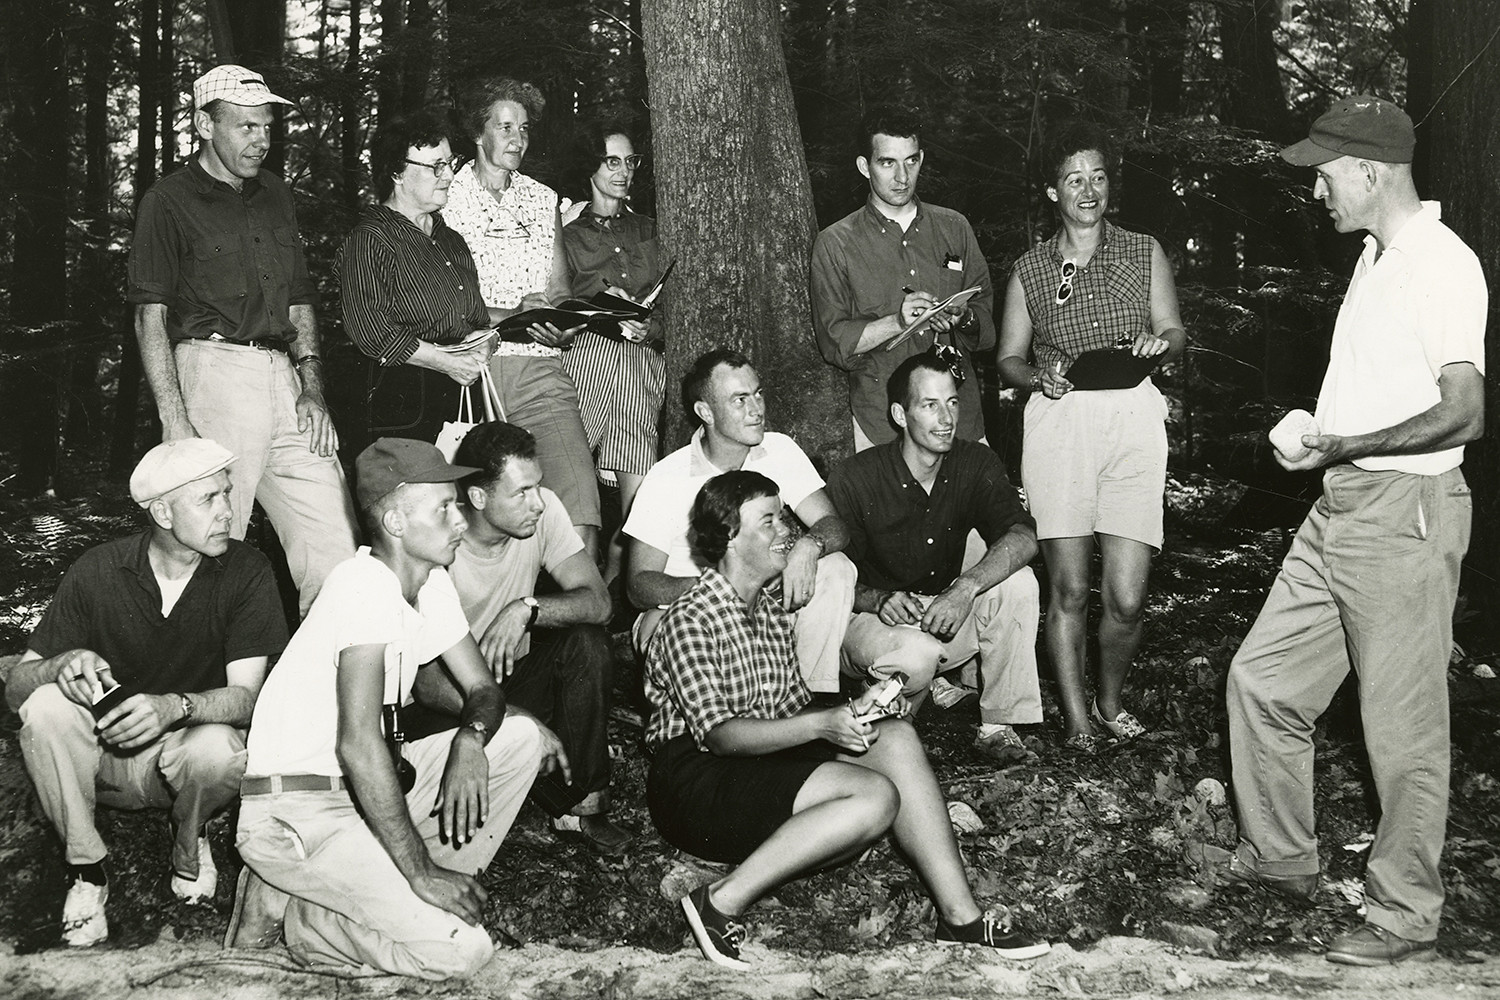 A group of people taking notes at a lecture in a forest.